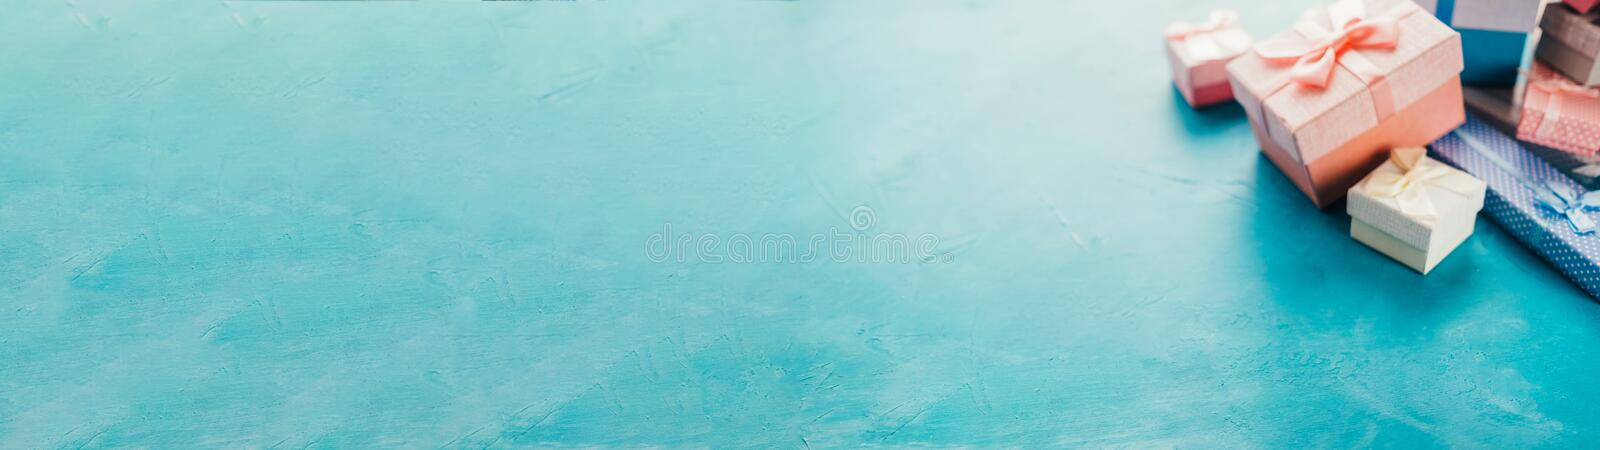 Special day surprise jewelry gift boxes aqua blue stock photos